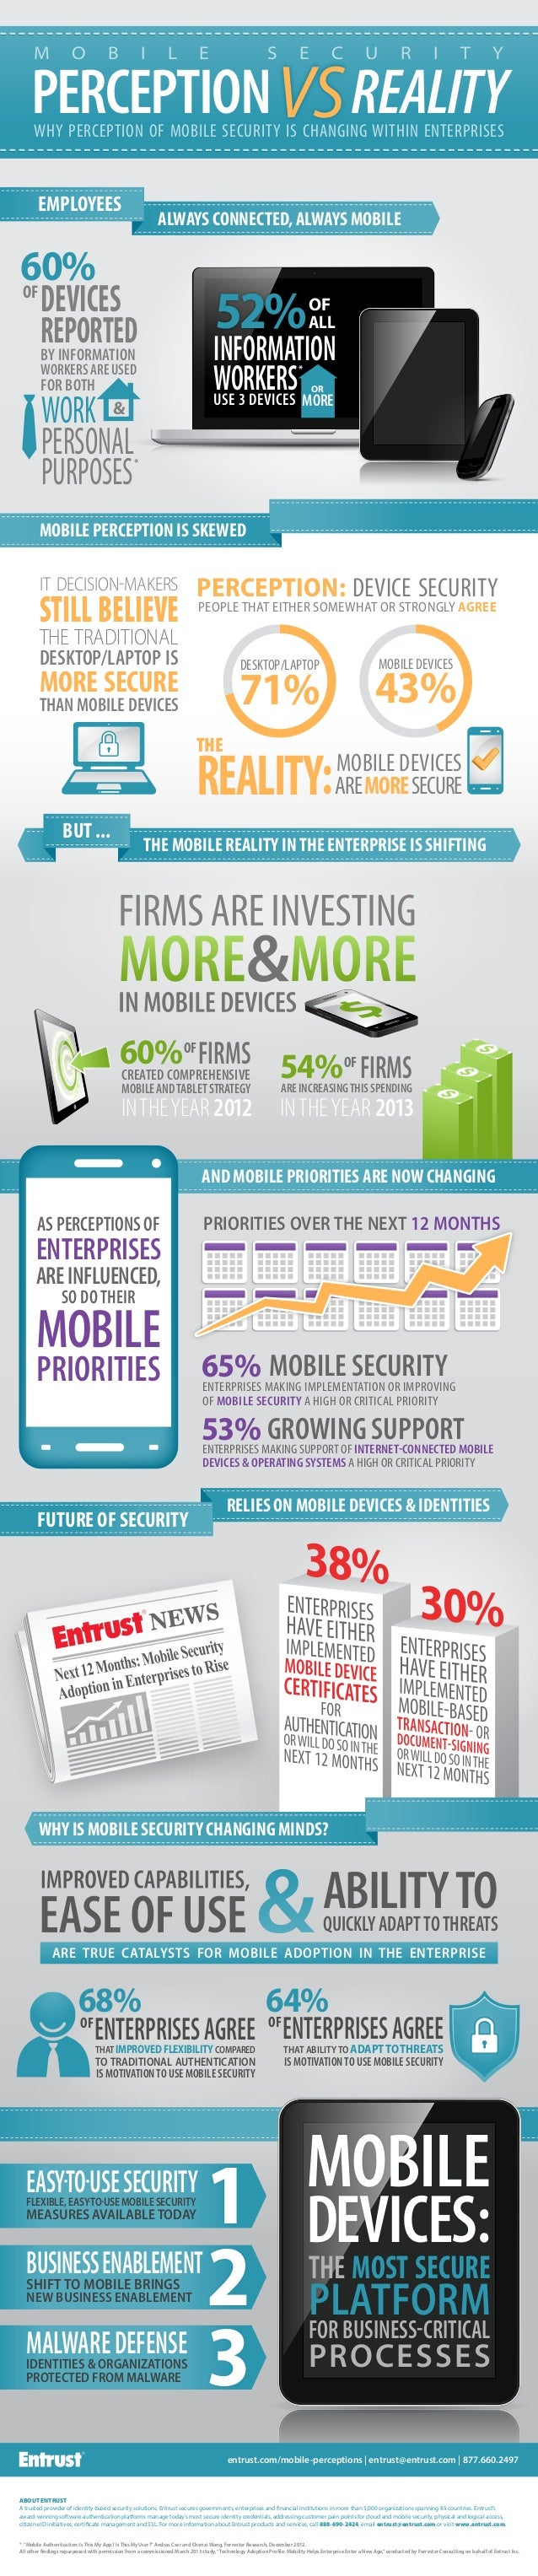 mobile security perception vs reality perception vs reality employeesalways connected always mobileand mobile priorities are now changinginformationworkers52%ofalluse 3 devicesormor